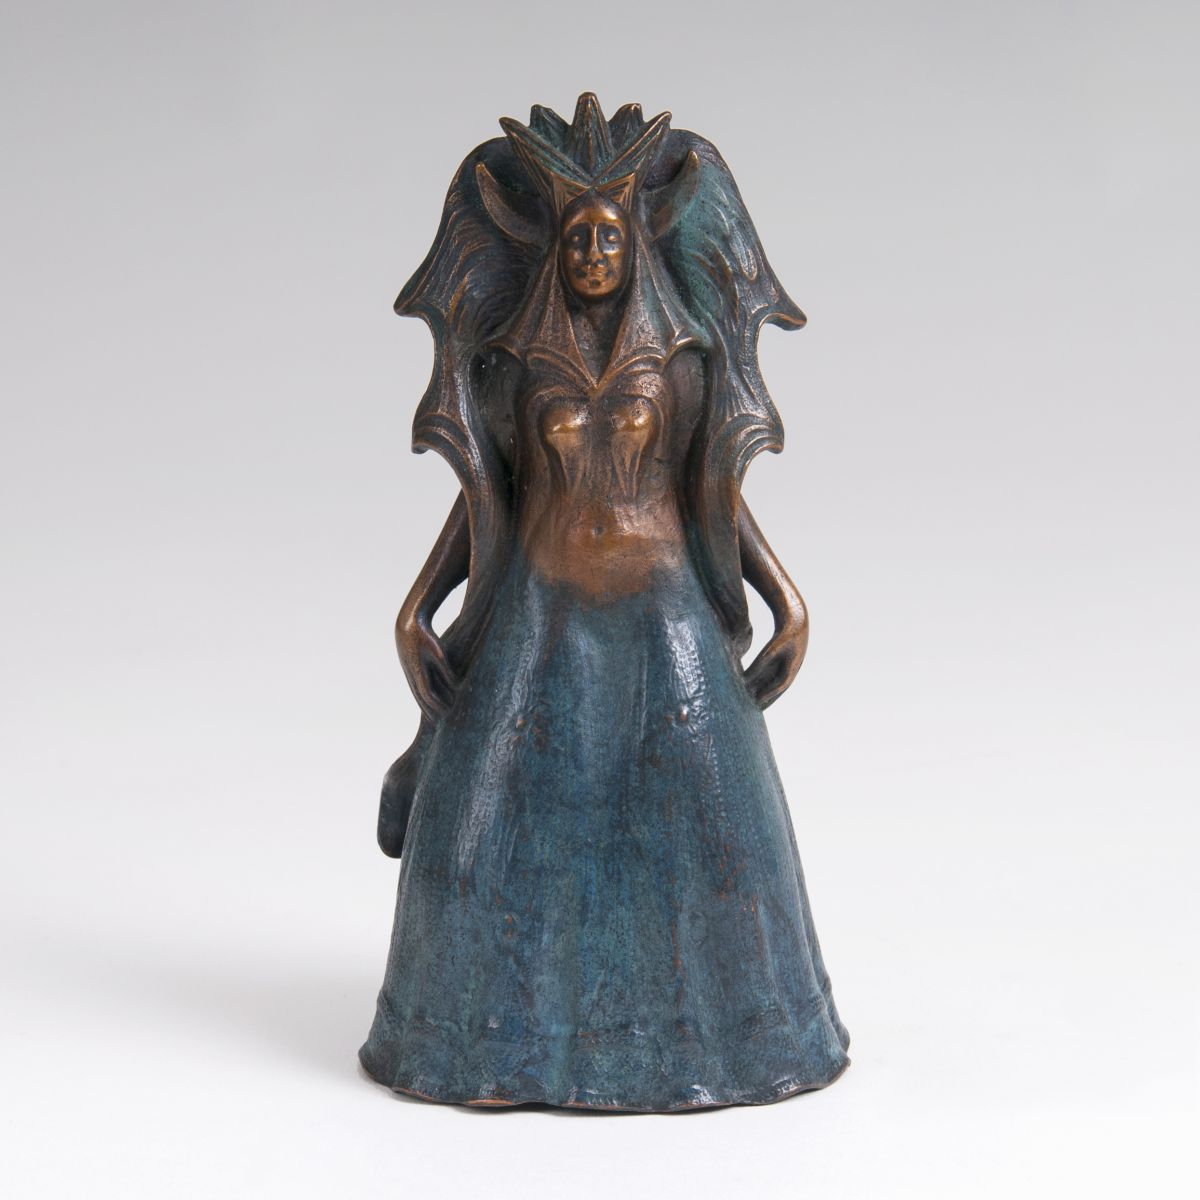 A Bronze Sculpture 'The Queen of the Night'